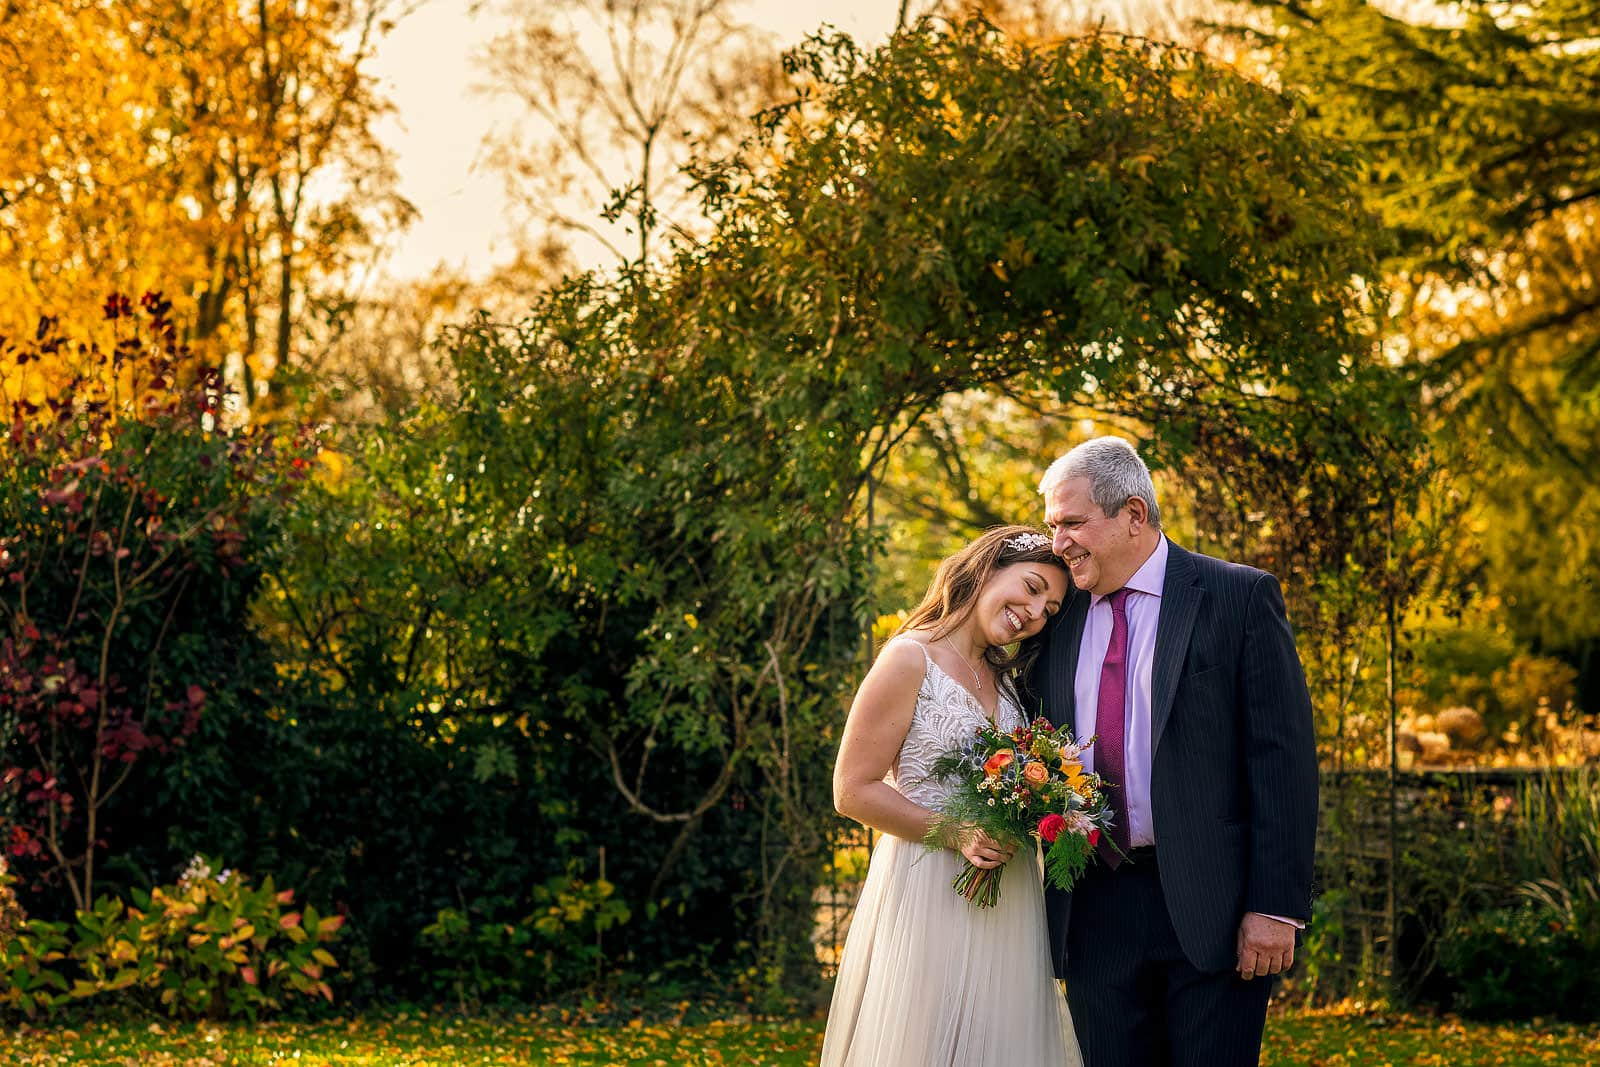 Father of the bride sharing a moment with his daughter